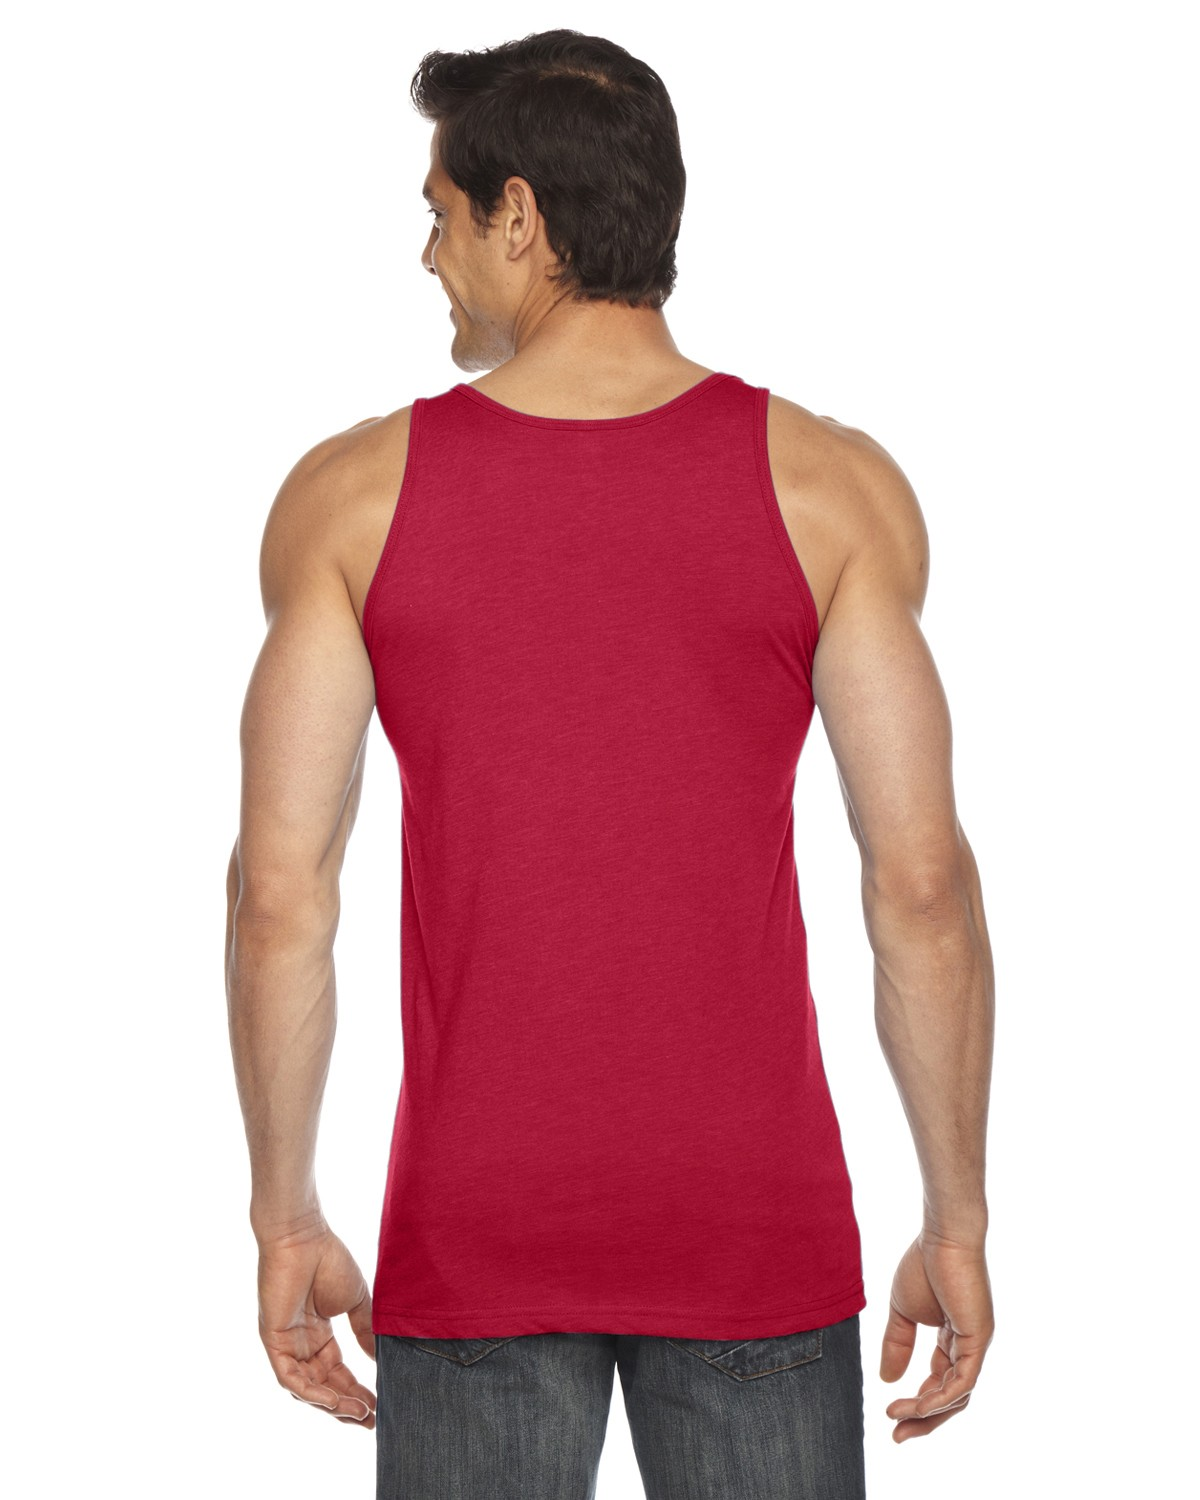 BB408W American Apparel RED